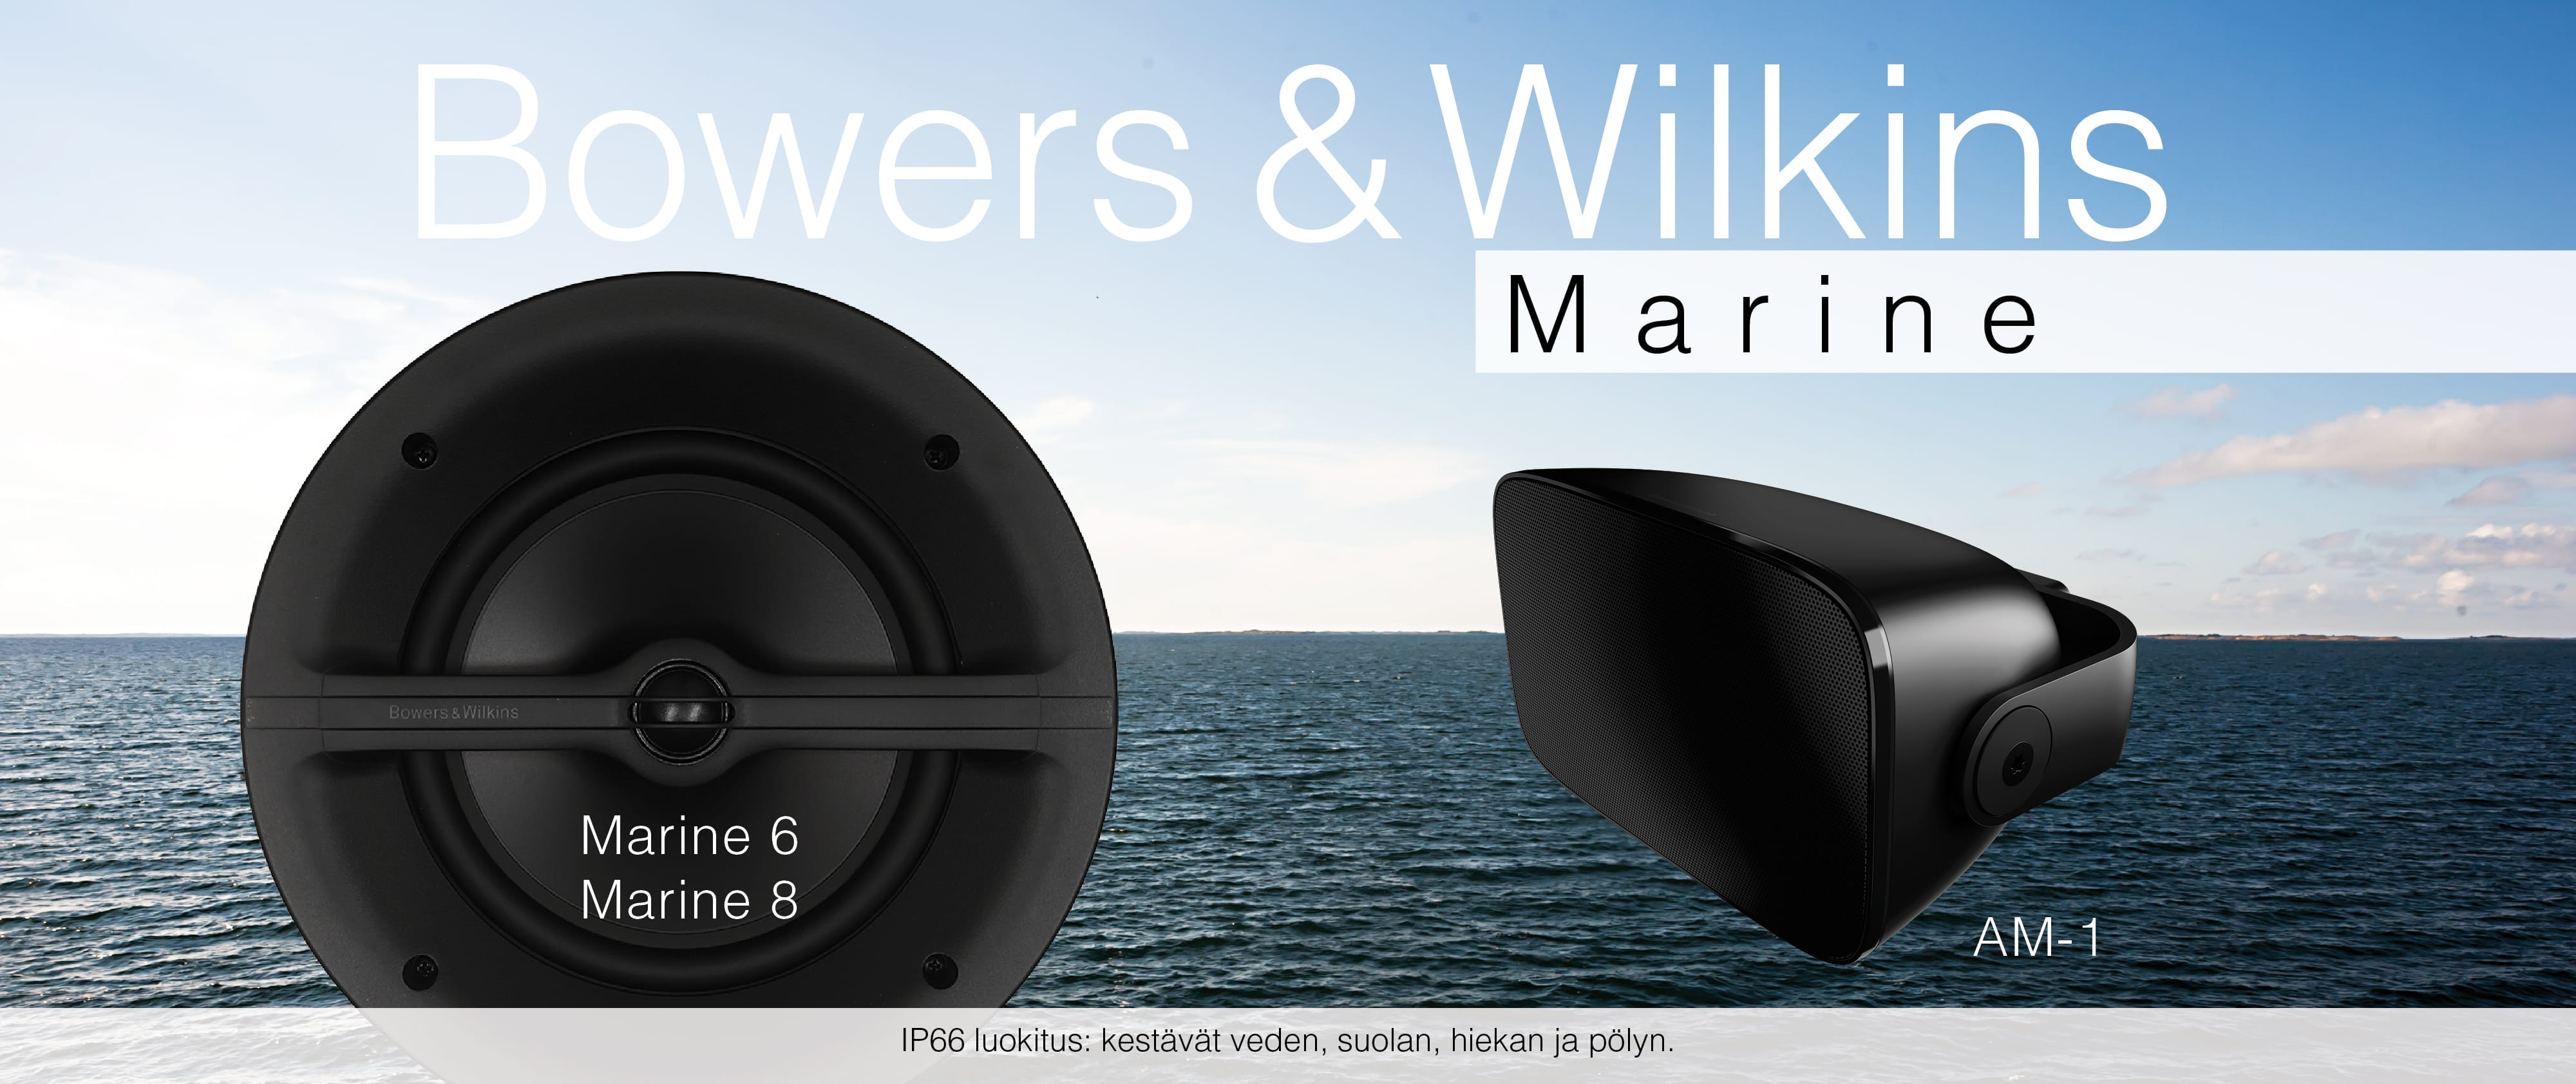 Bowers & Wilkins Marine